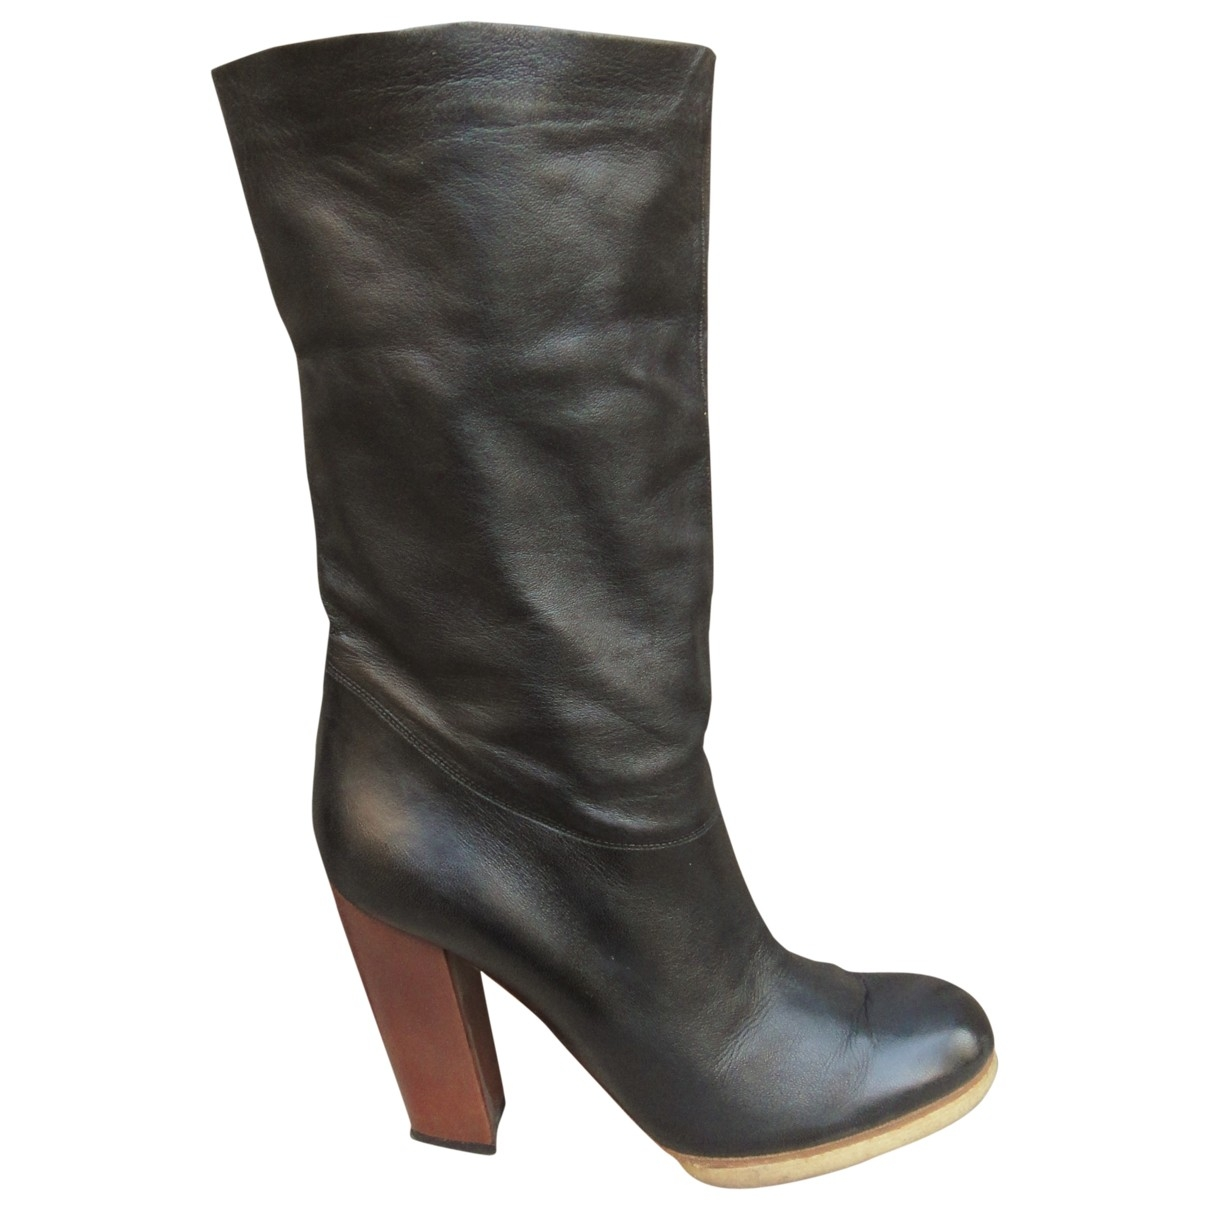 Lanvin \N Black Leather Boots for Women 38.5 EU